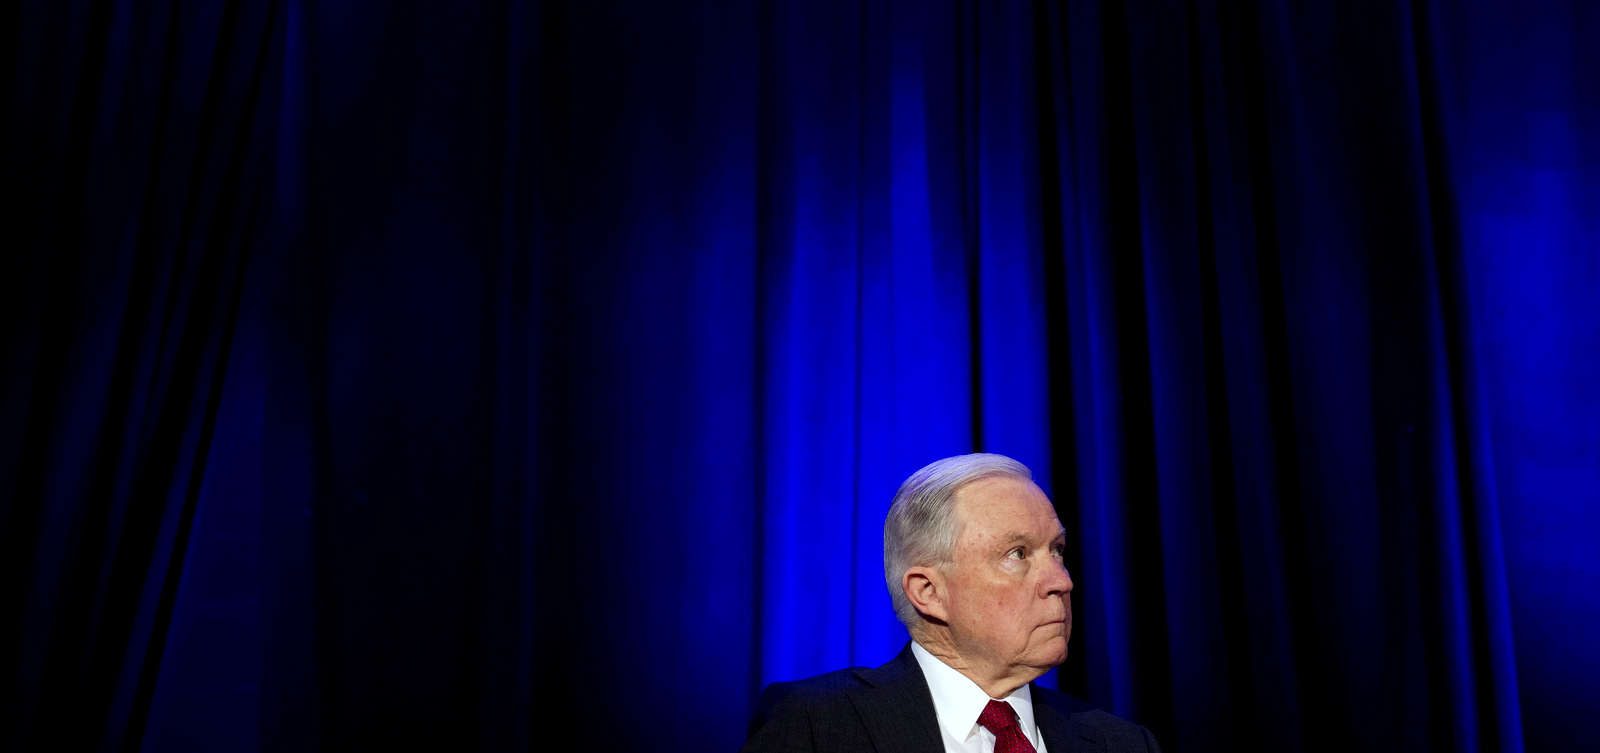 """Jeff Sessions' Dog Whistle to White Supremacy: Sheriffs Guard Our """"Anglo-American Heritage"""""""